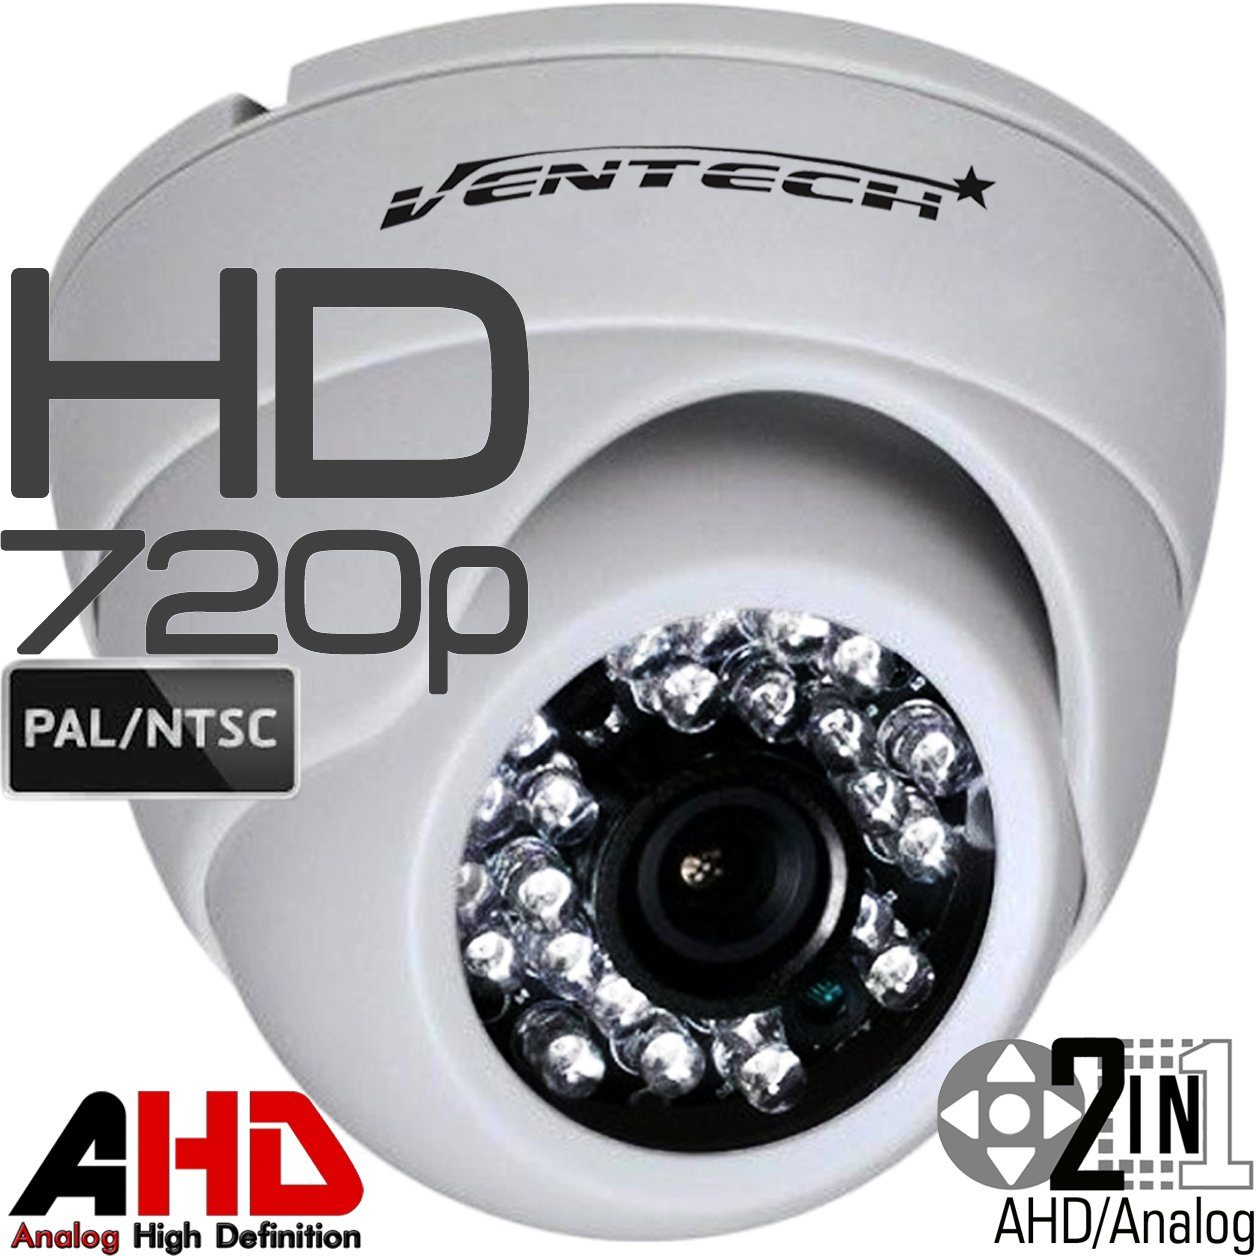 Ventech HD 1.0MP 720P AHD Dome Security Camera outdoor 3.6mm wide angle Lens 24 IR LEDs ICR Auto Day Night Video Surveillance Works with Analog and AHD DVRs CAMAHD Waterproof Metal Ball by VENTECH